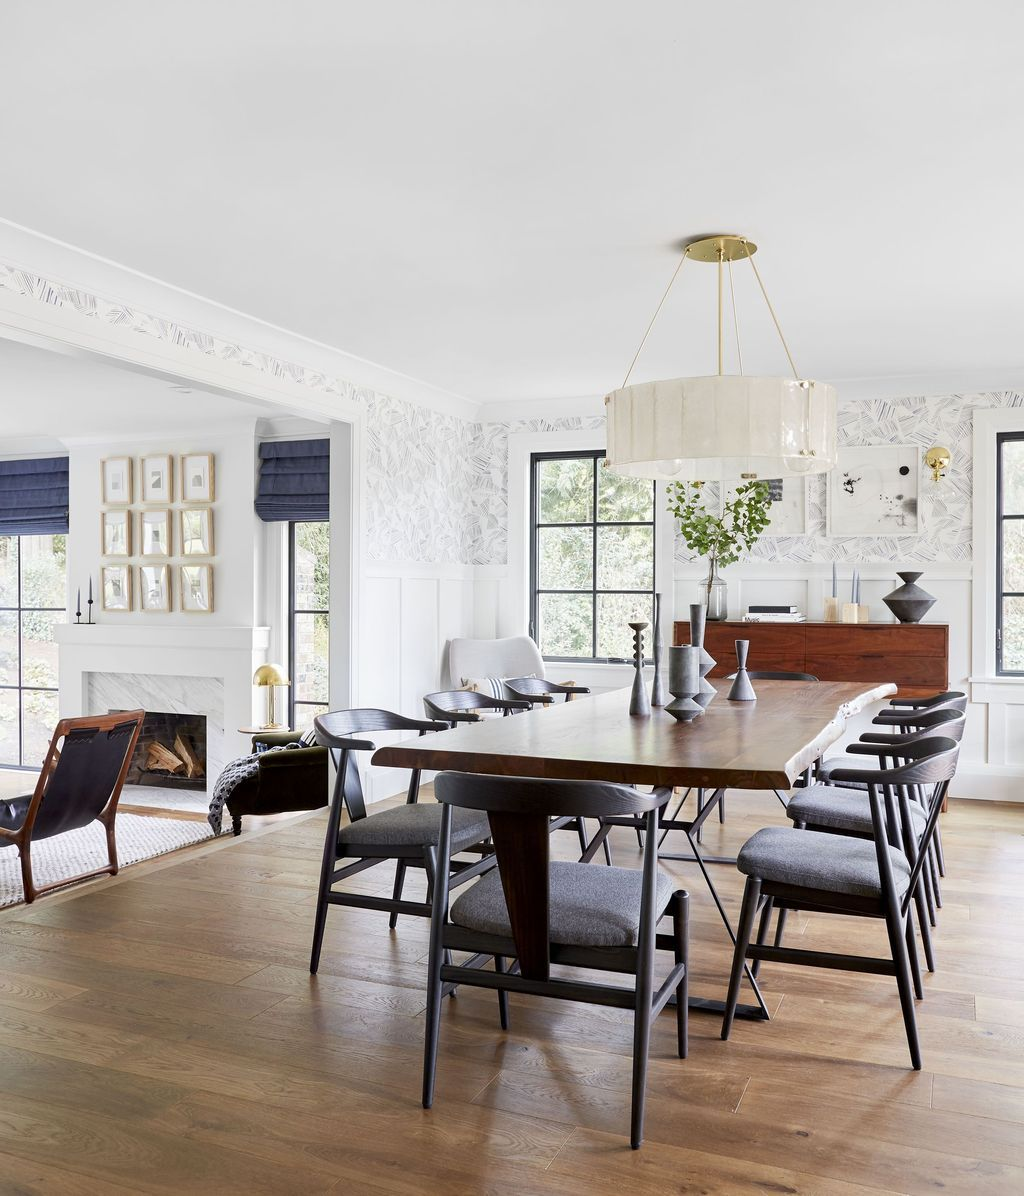 20 Outstanding Dining Room Set Ideas For Your Inspiration House